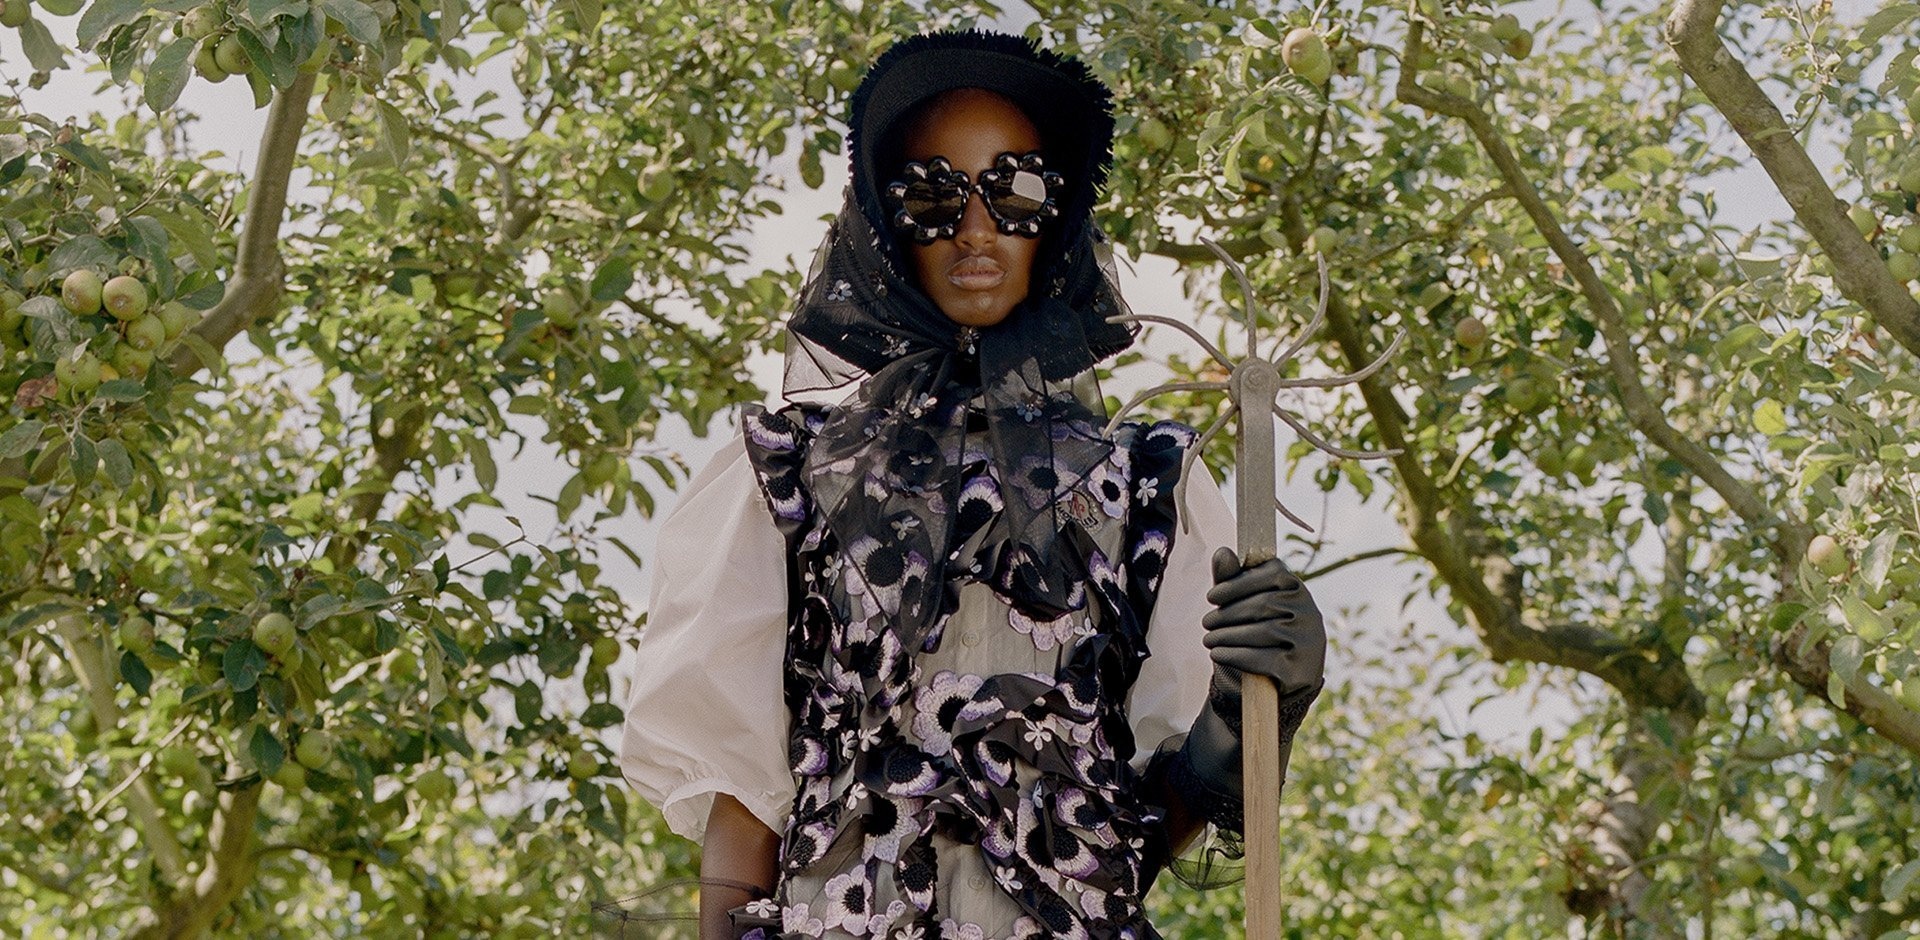 Moncler Genius, Simone Rocha, capsule collection, SS19